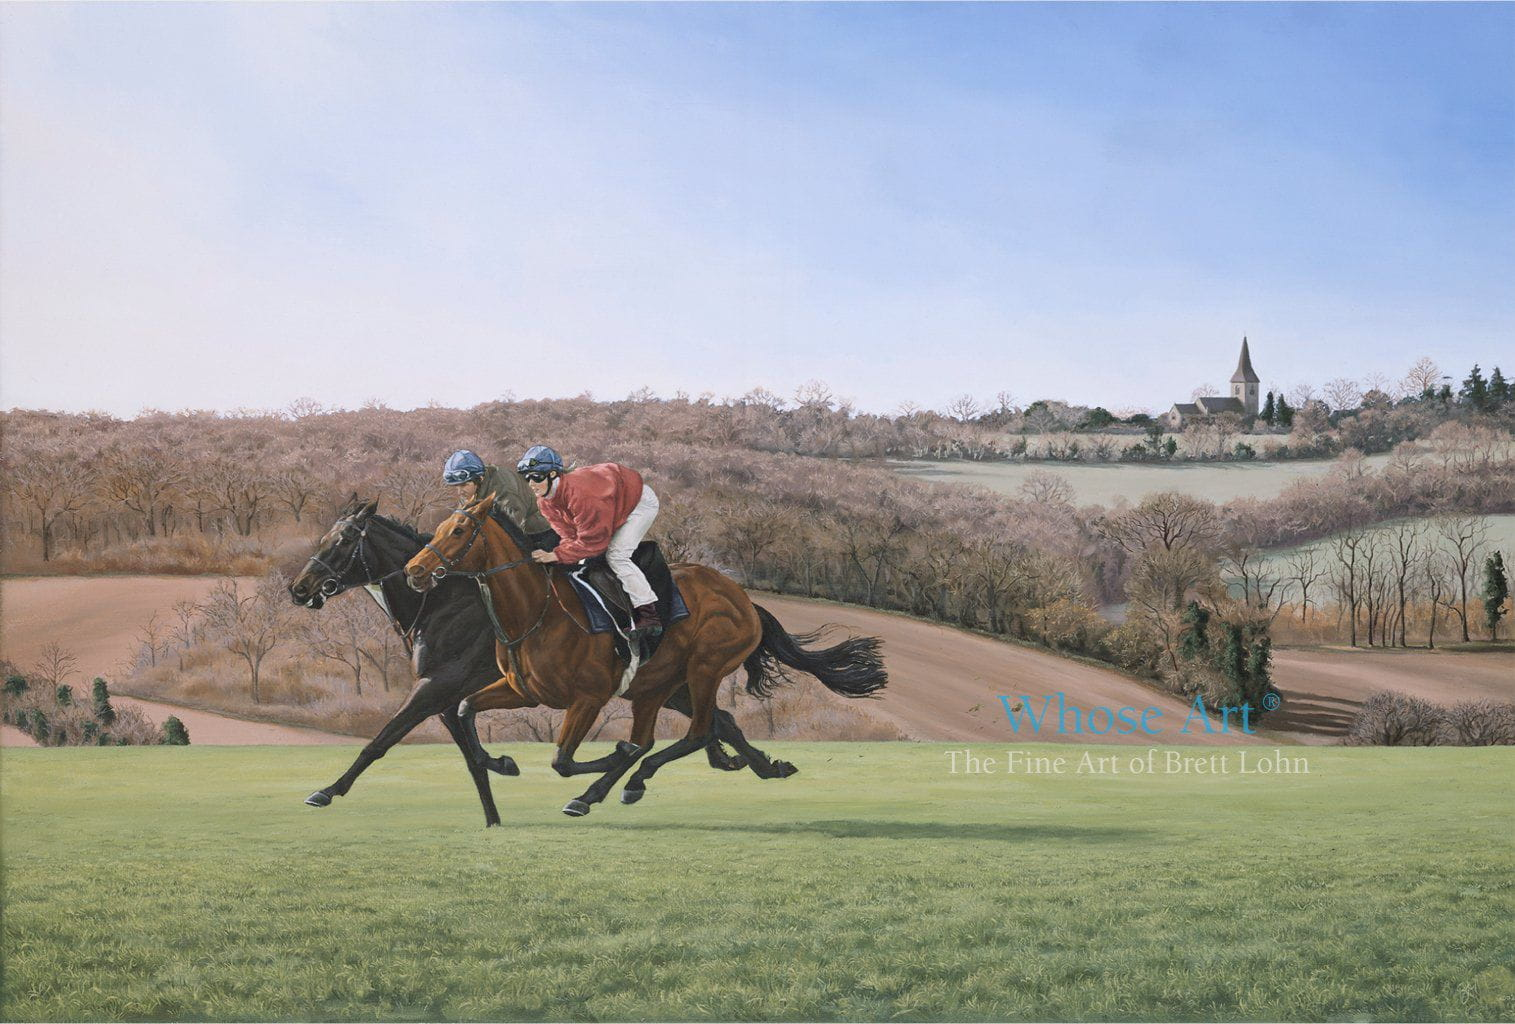 Horse Art Card of an oil painting of two horses galloping on Epsom Downs in the early spring morning sunshine.